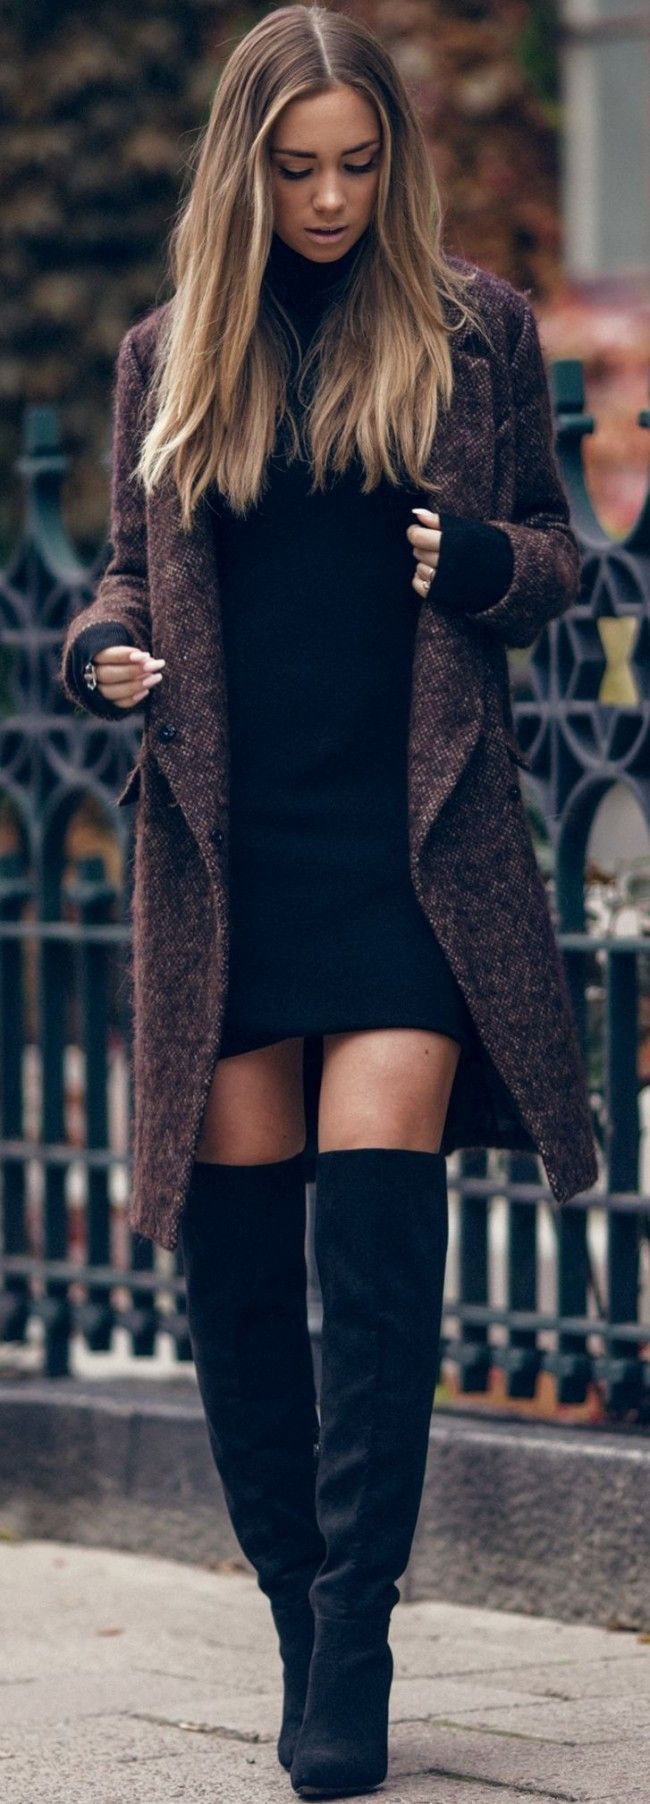 Lisa Olsson Black Thigh High Overknees Fall Street Style Inspo #lisa